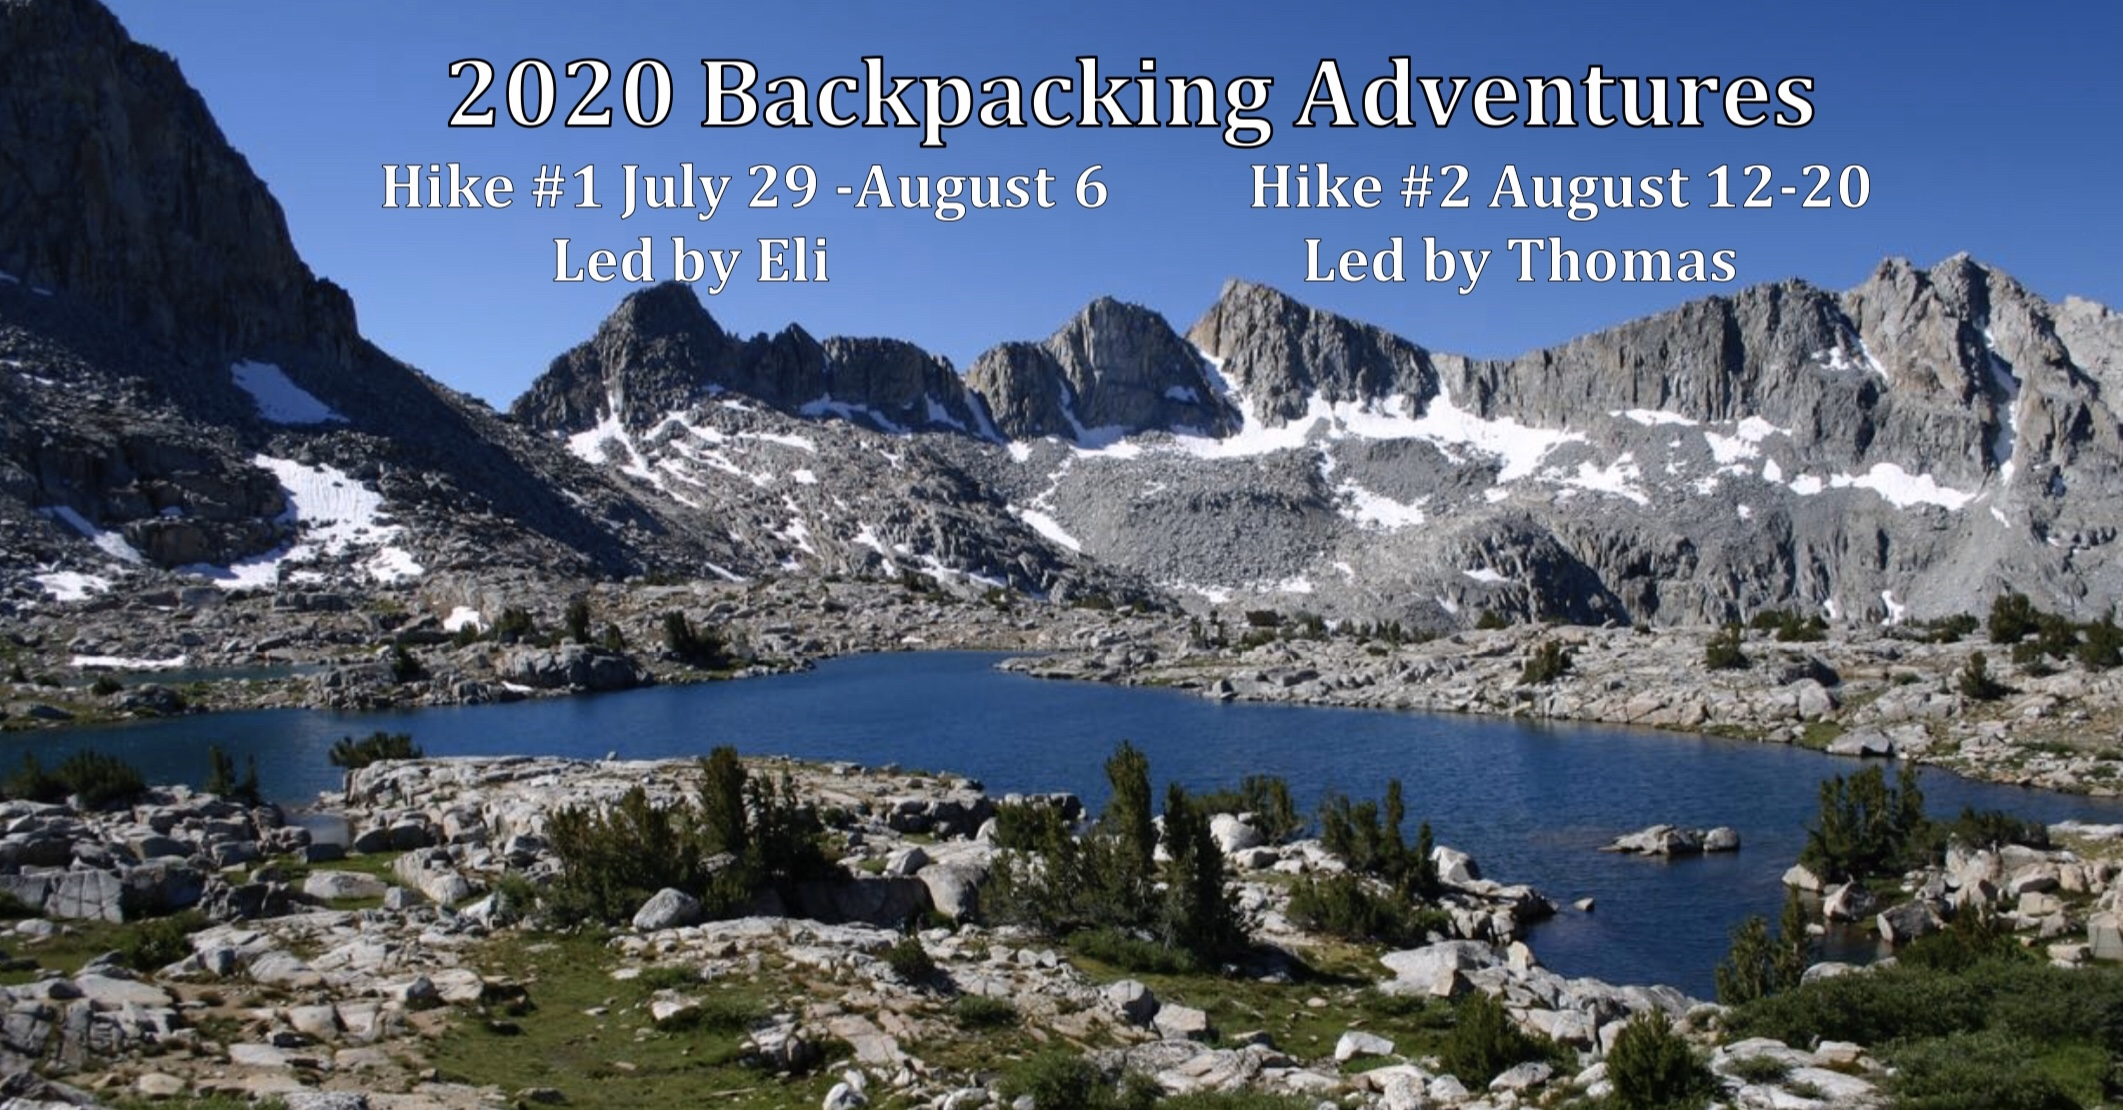 Pictures of the OPC Backpacking Announcemnet in the Sierras